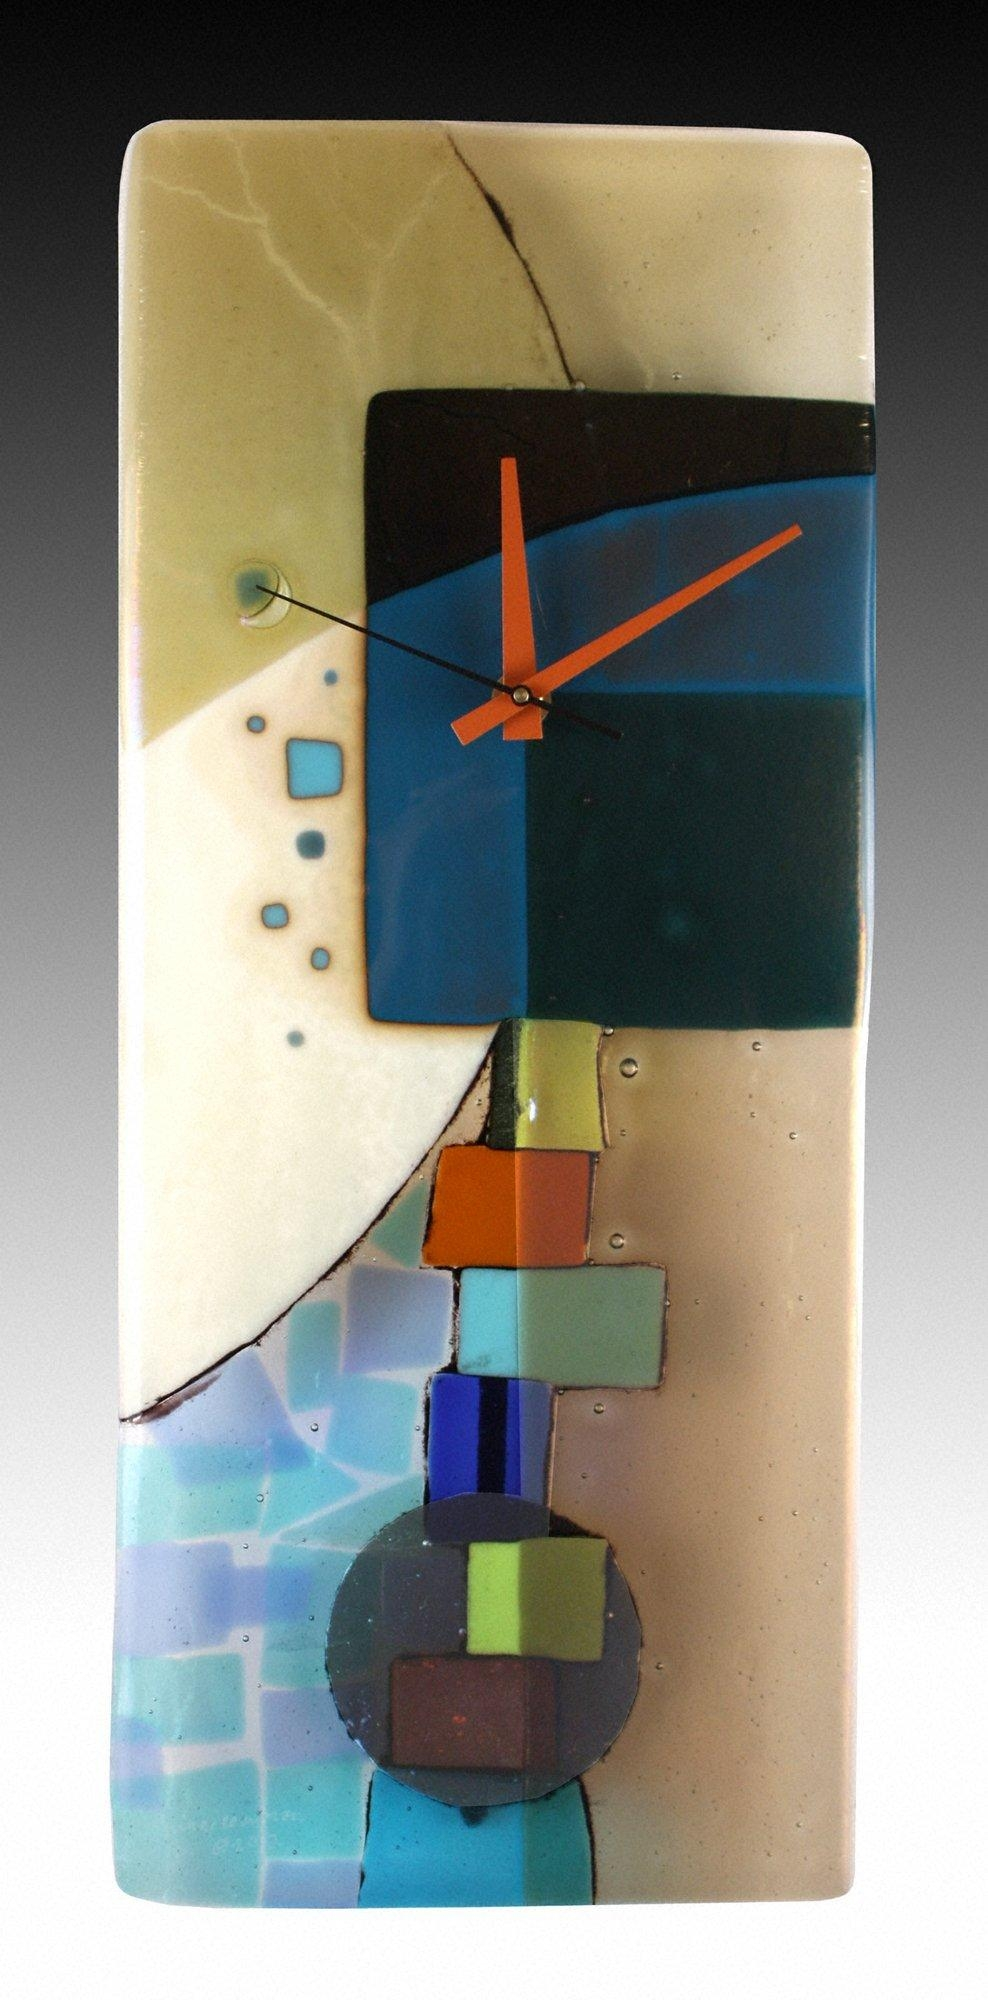 Glass Wall Artnorth American Artists | Artful Home In Fused Glass Wall Artwork (View 9 of 20)